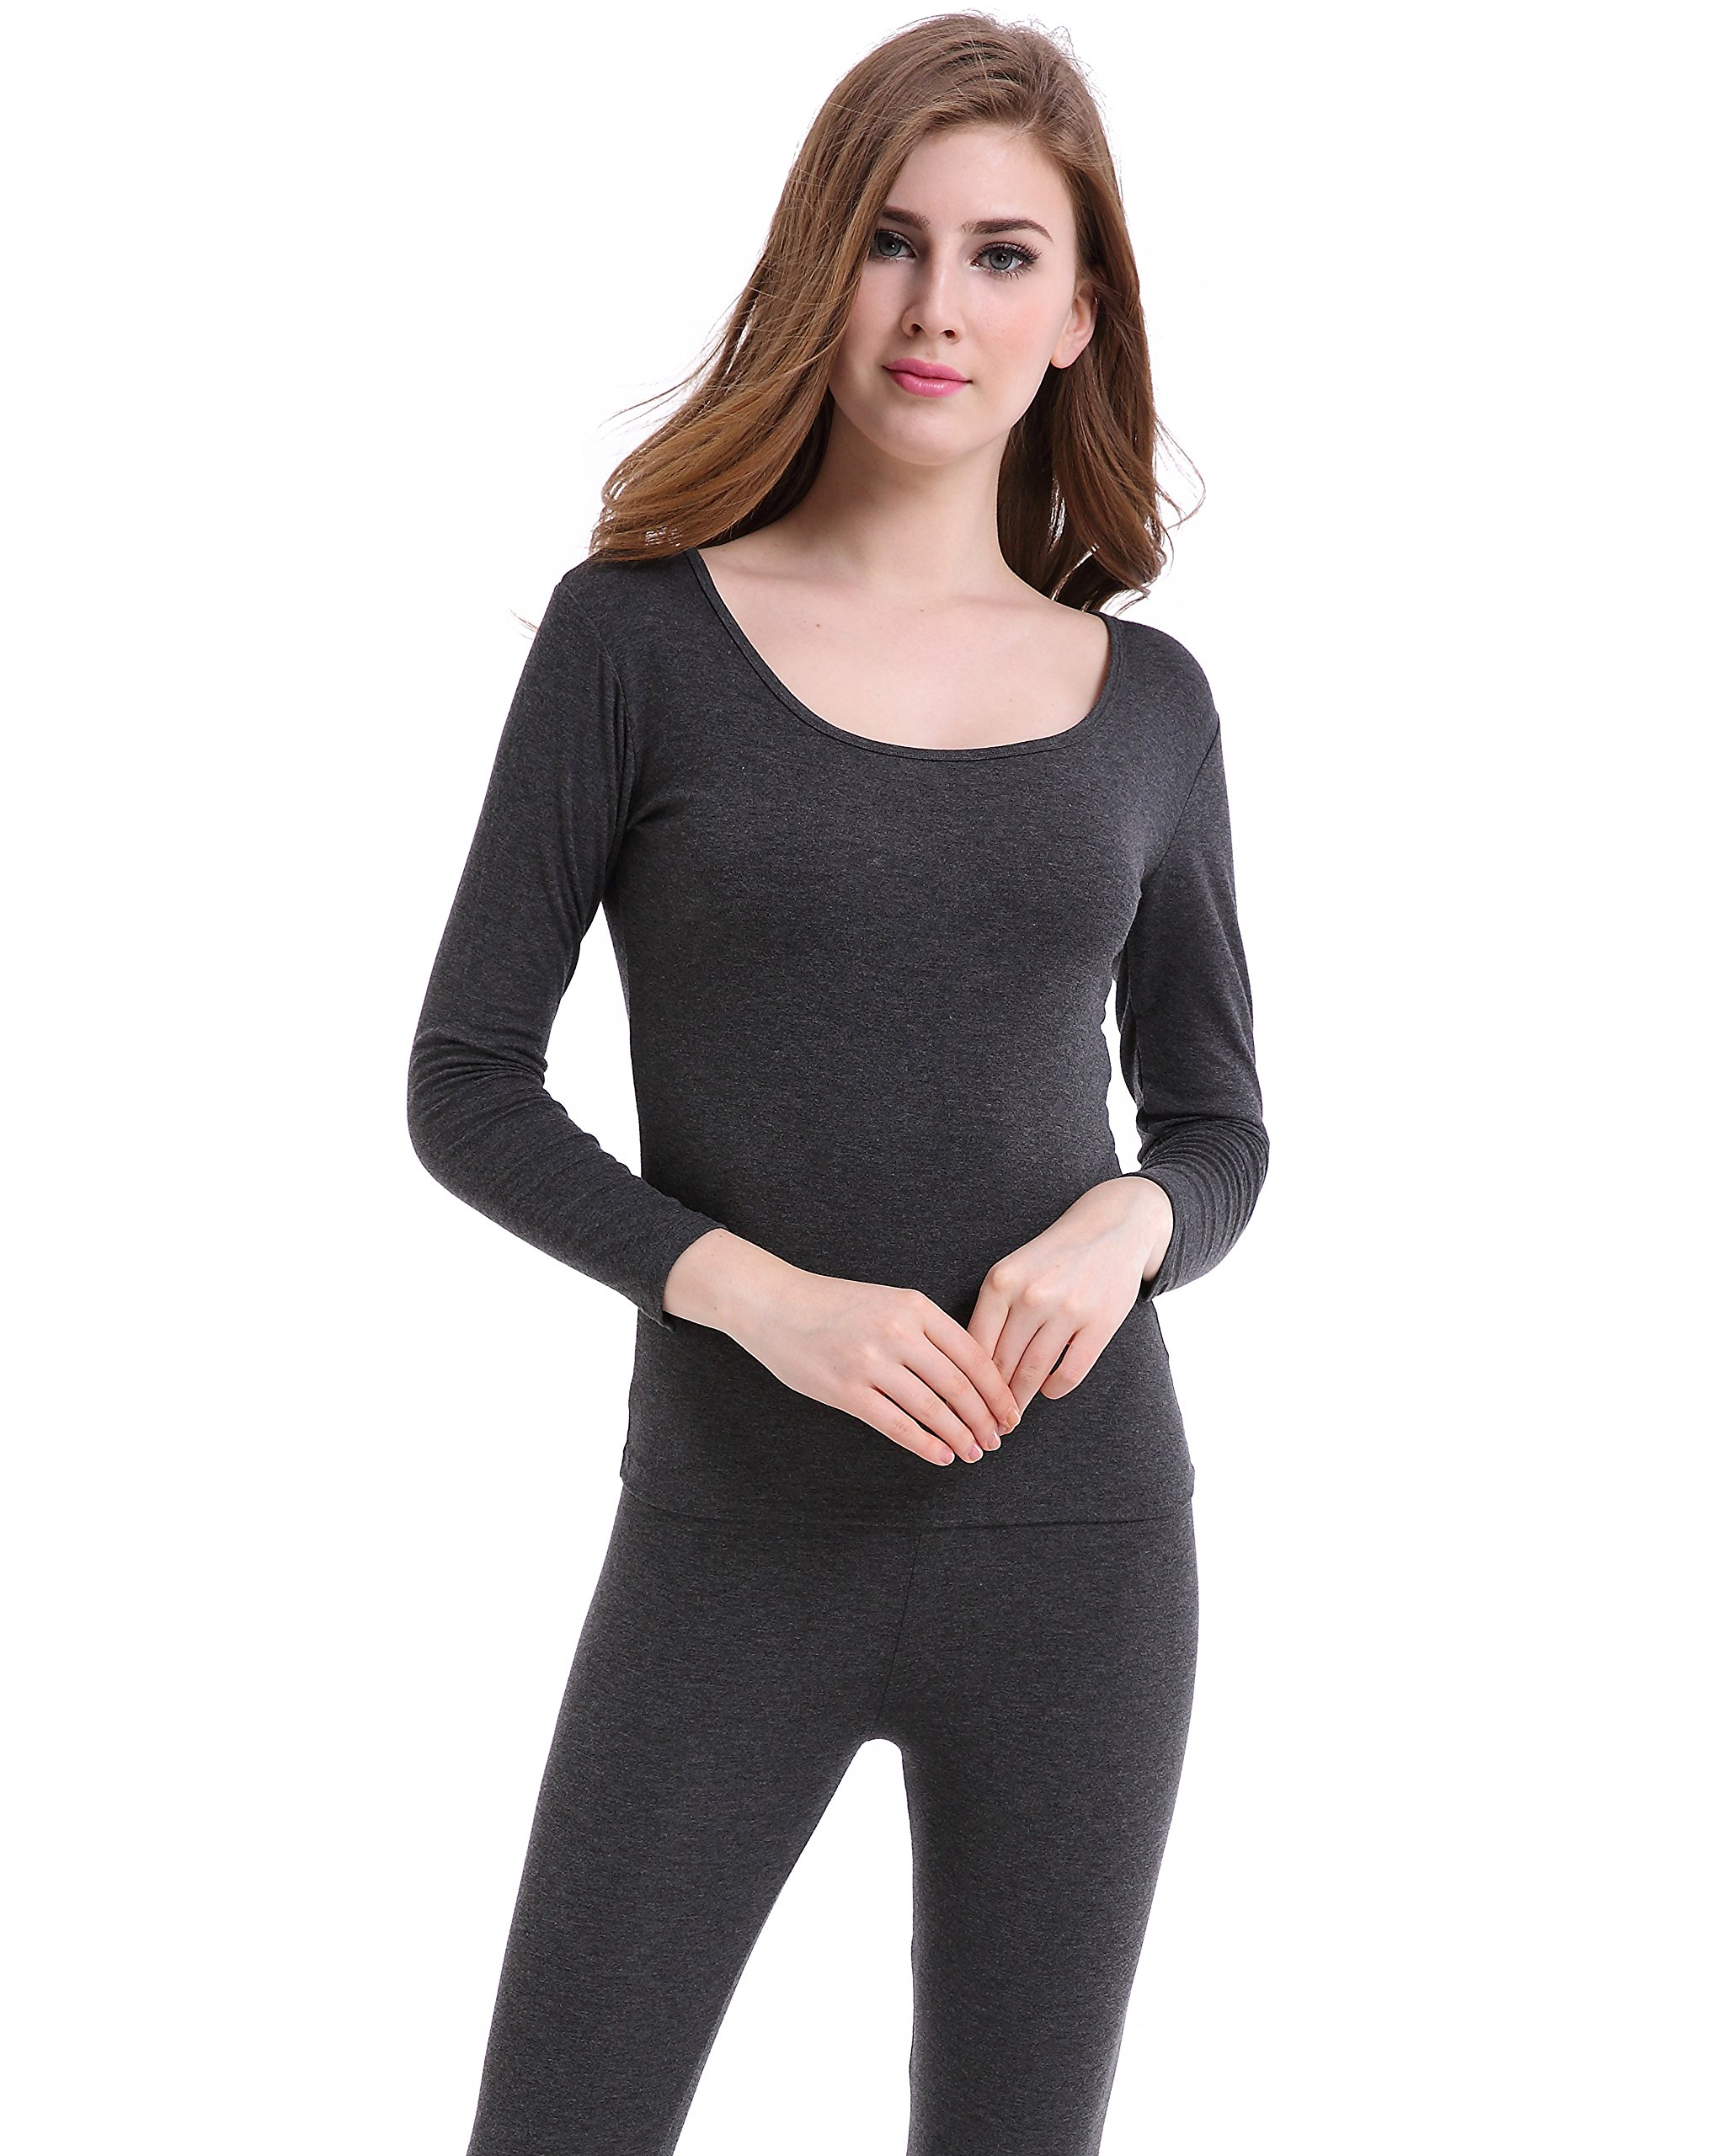 Woman Long Johns Crew Neck Lightweight Base Layer Thin Thermal Underwear Wicking by CnlanRow